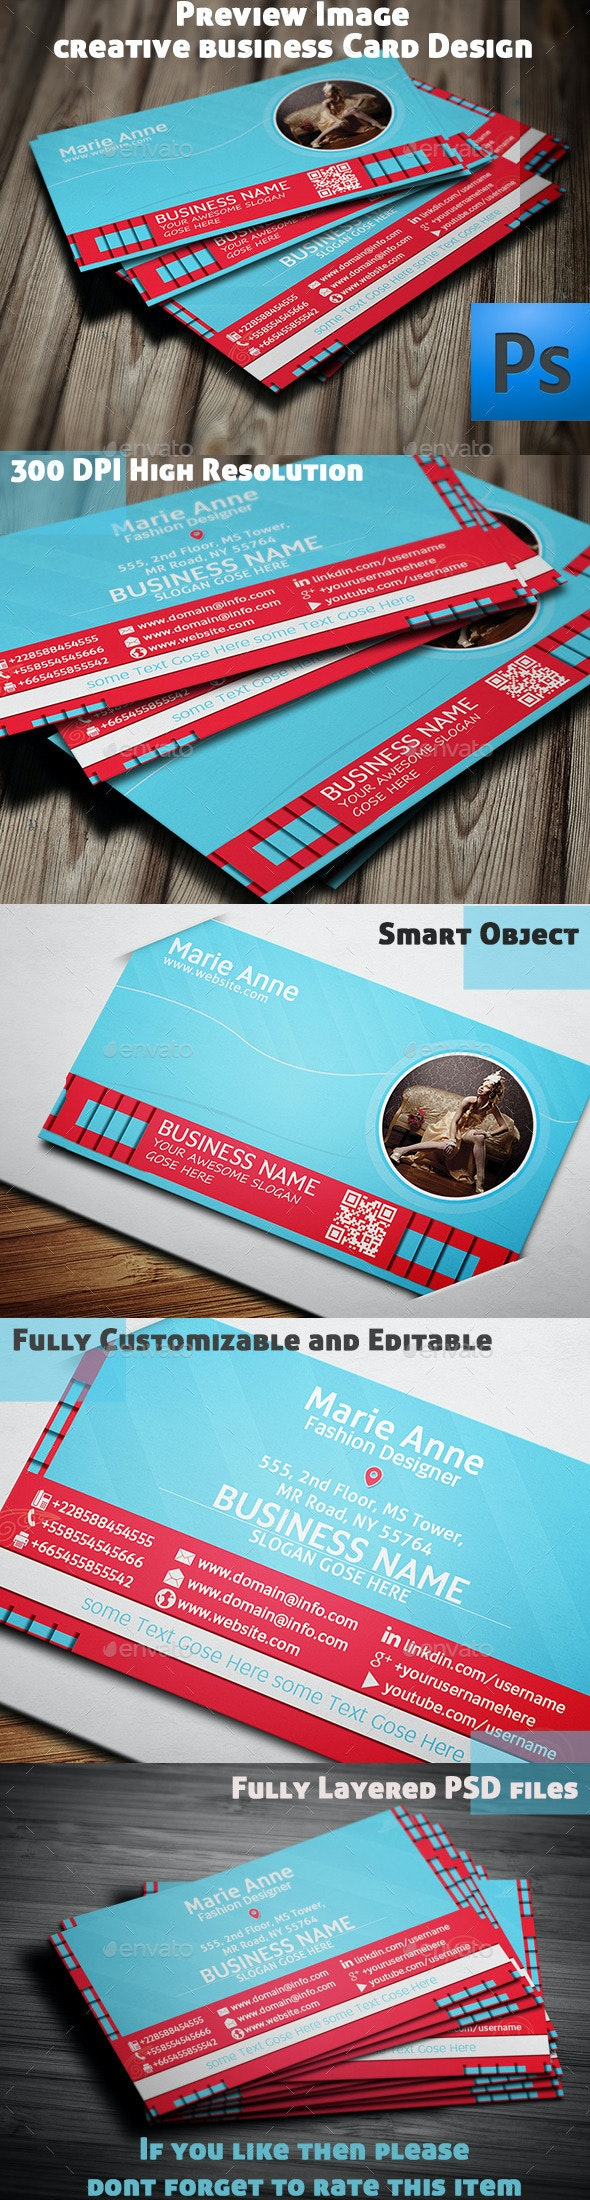 Creative Business Card Design-v1 - Creative Business Cards